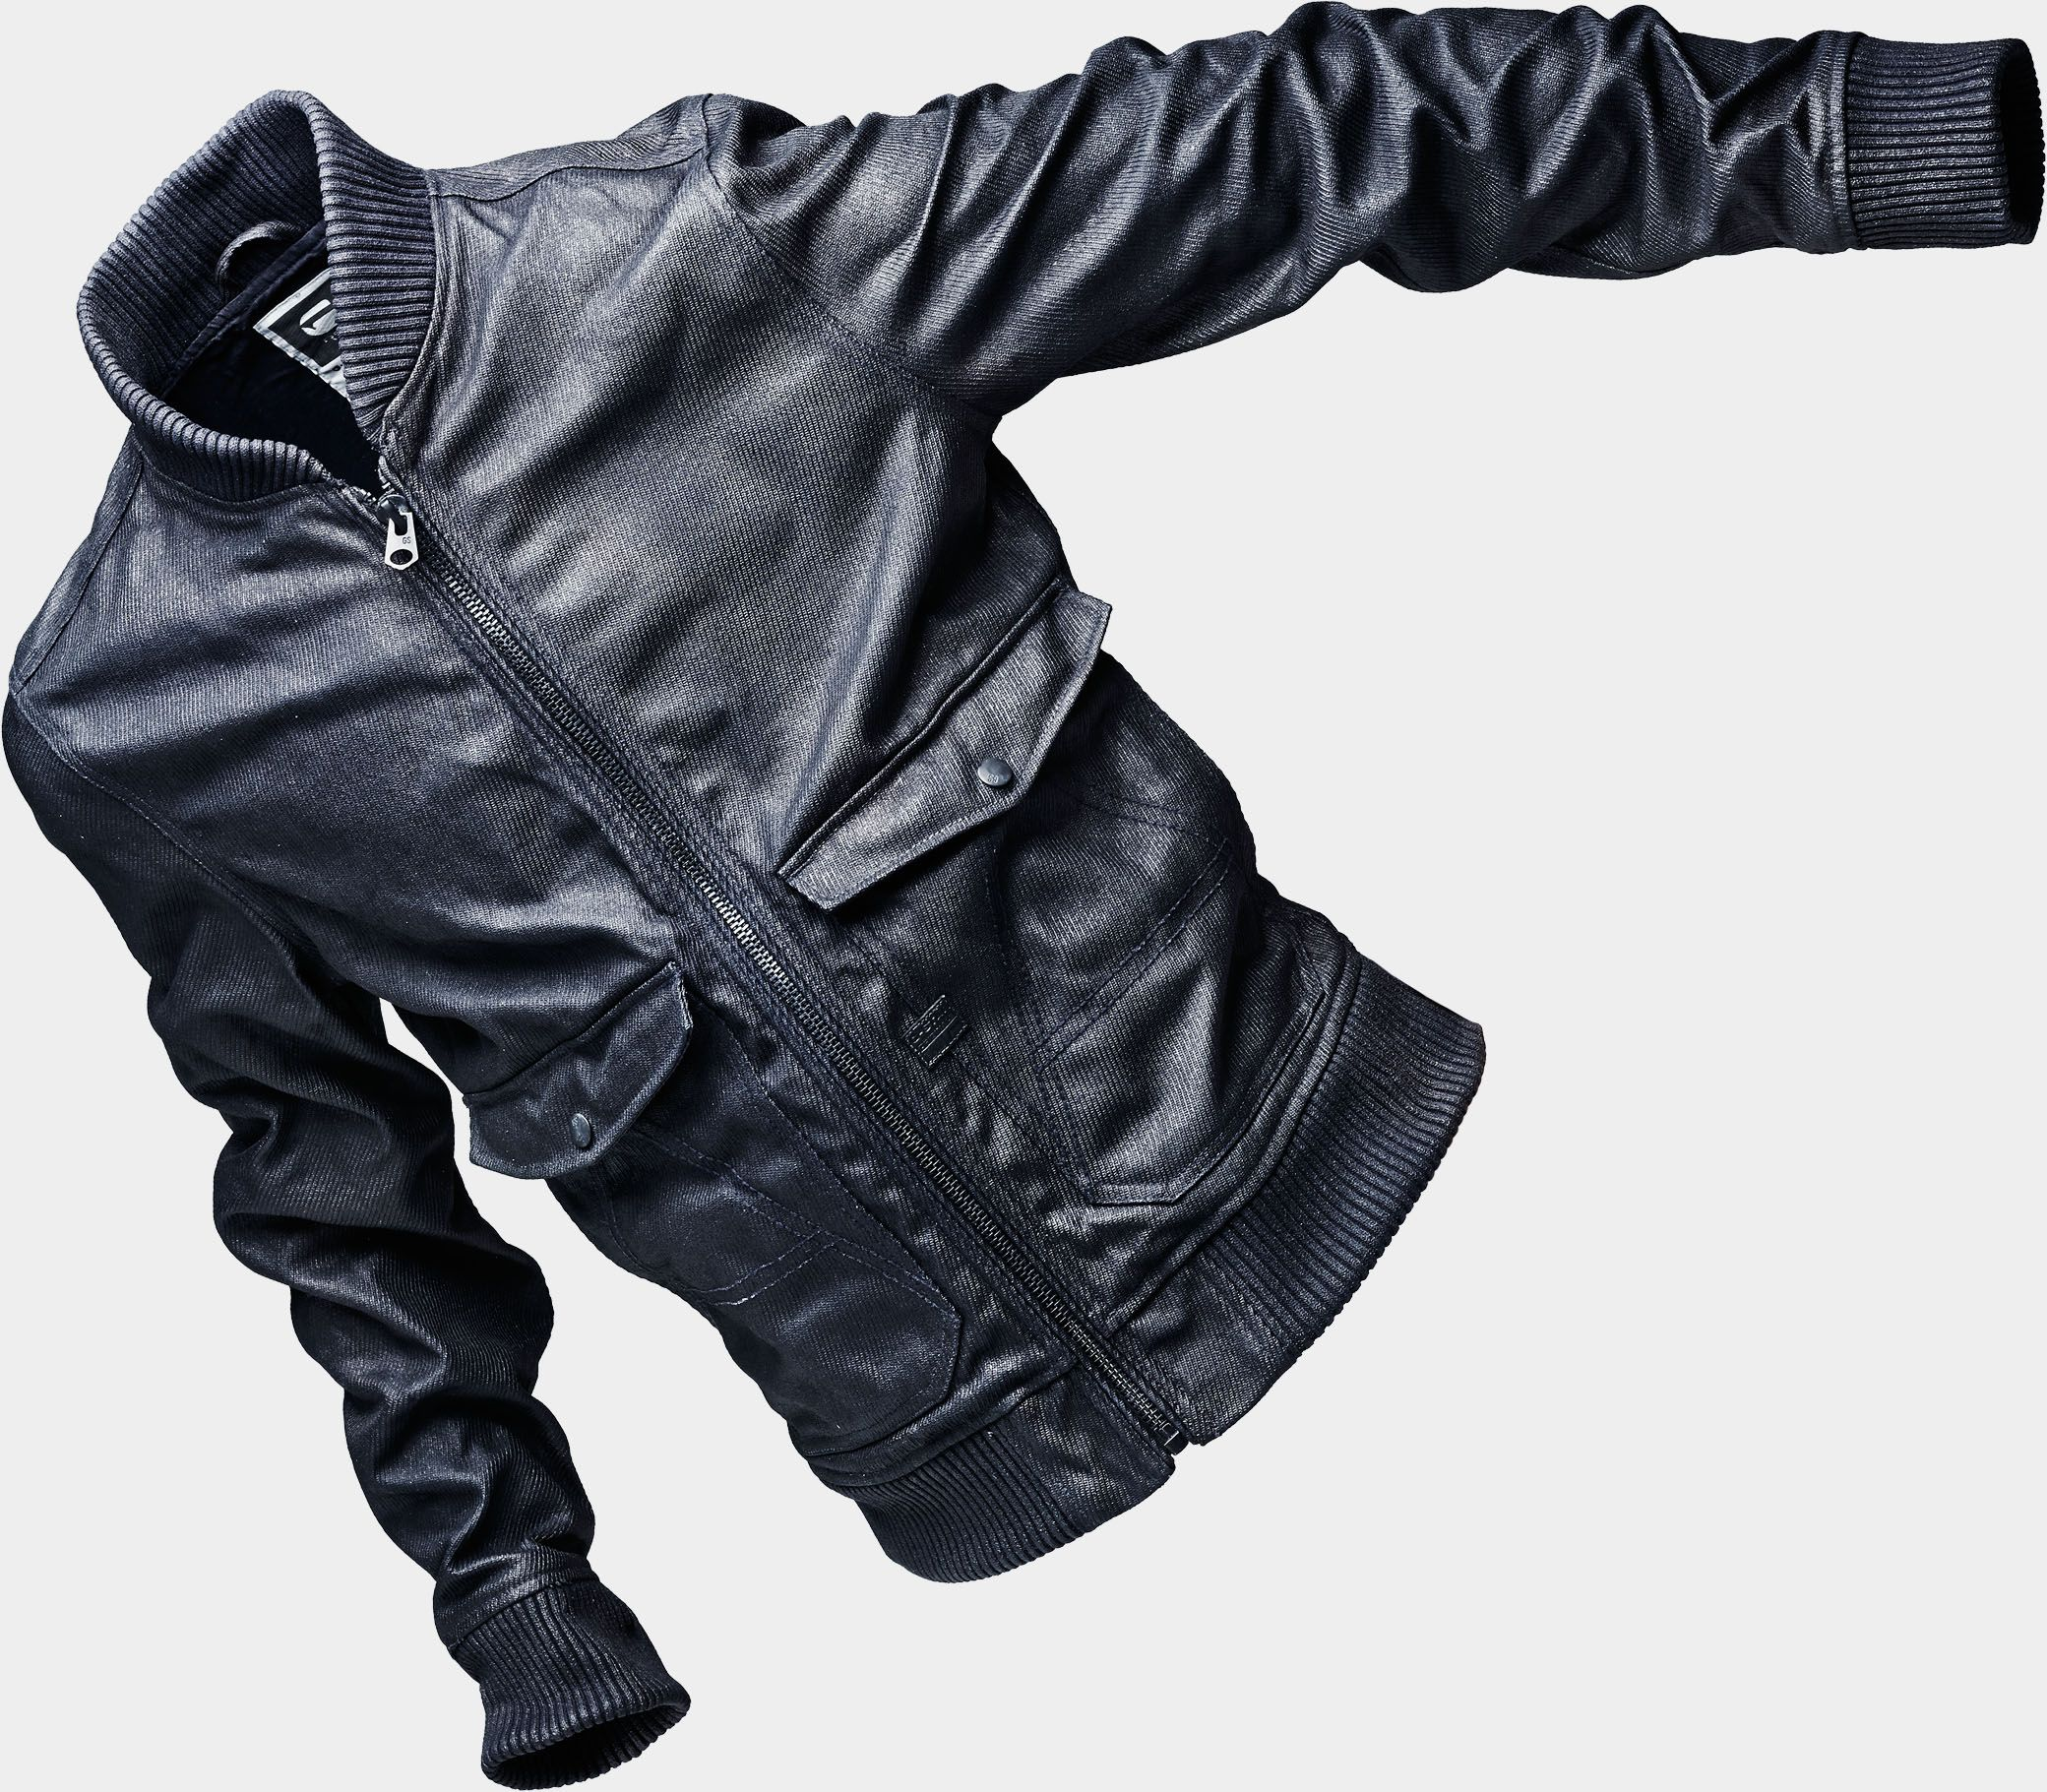 G Star Raw A Crotch 3 D Lined Bomber Aw14 Mens Street Style Raw Denim Leather Jacket [ 1821 x 2080 Pixel ]